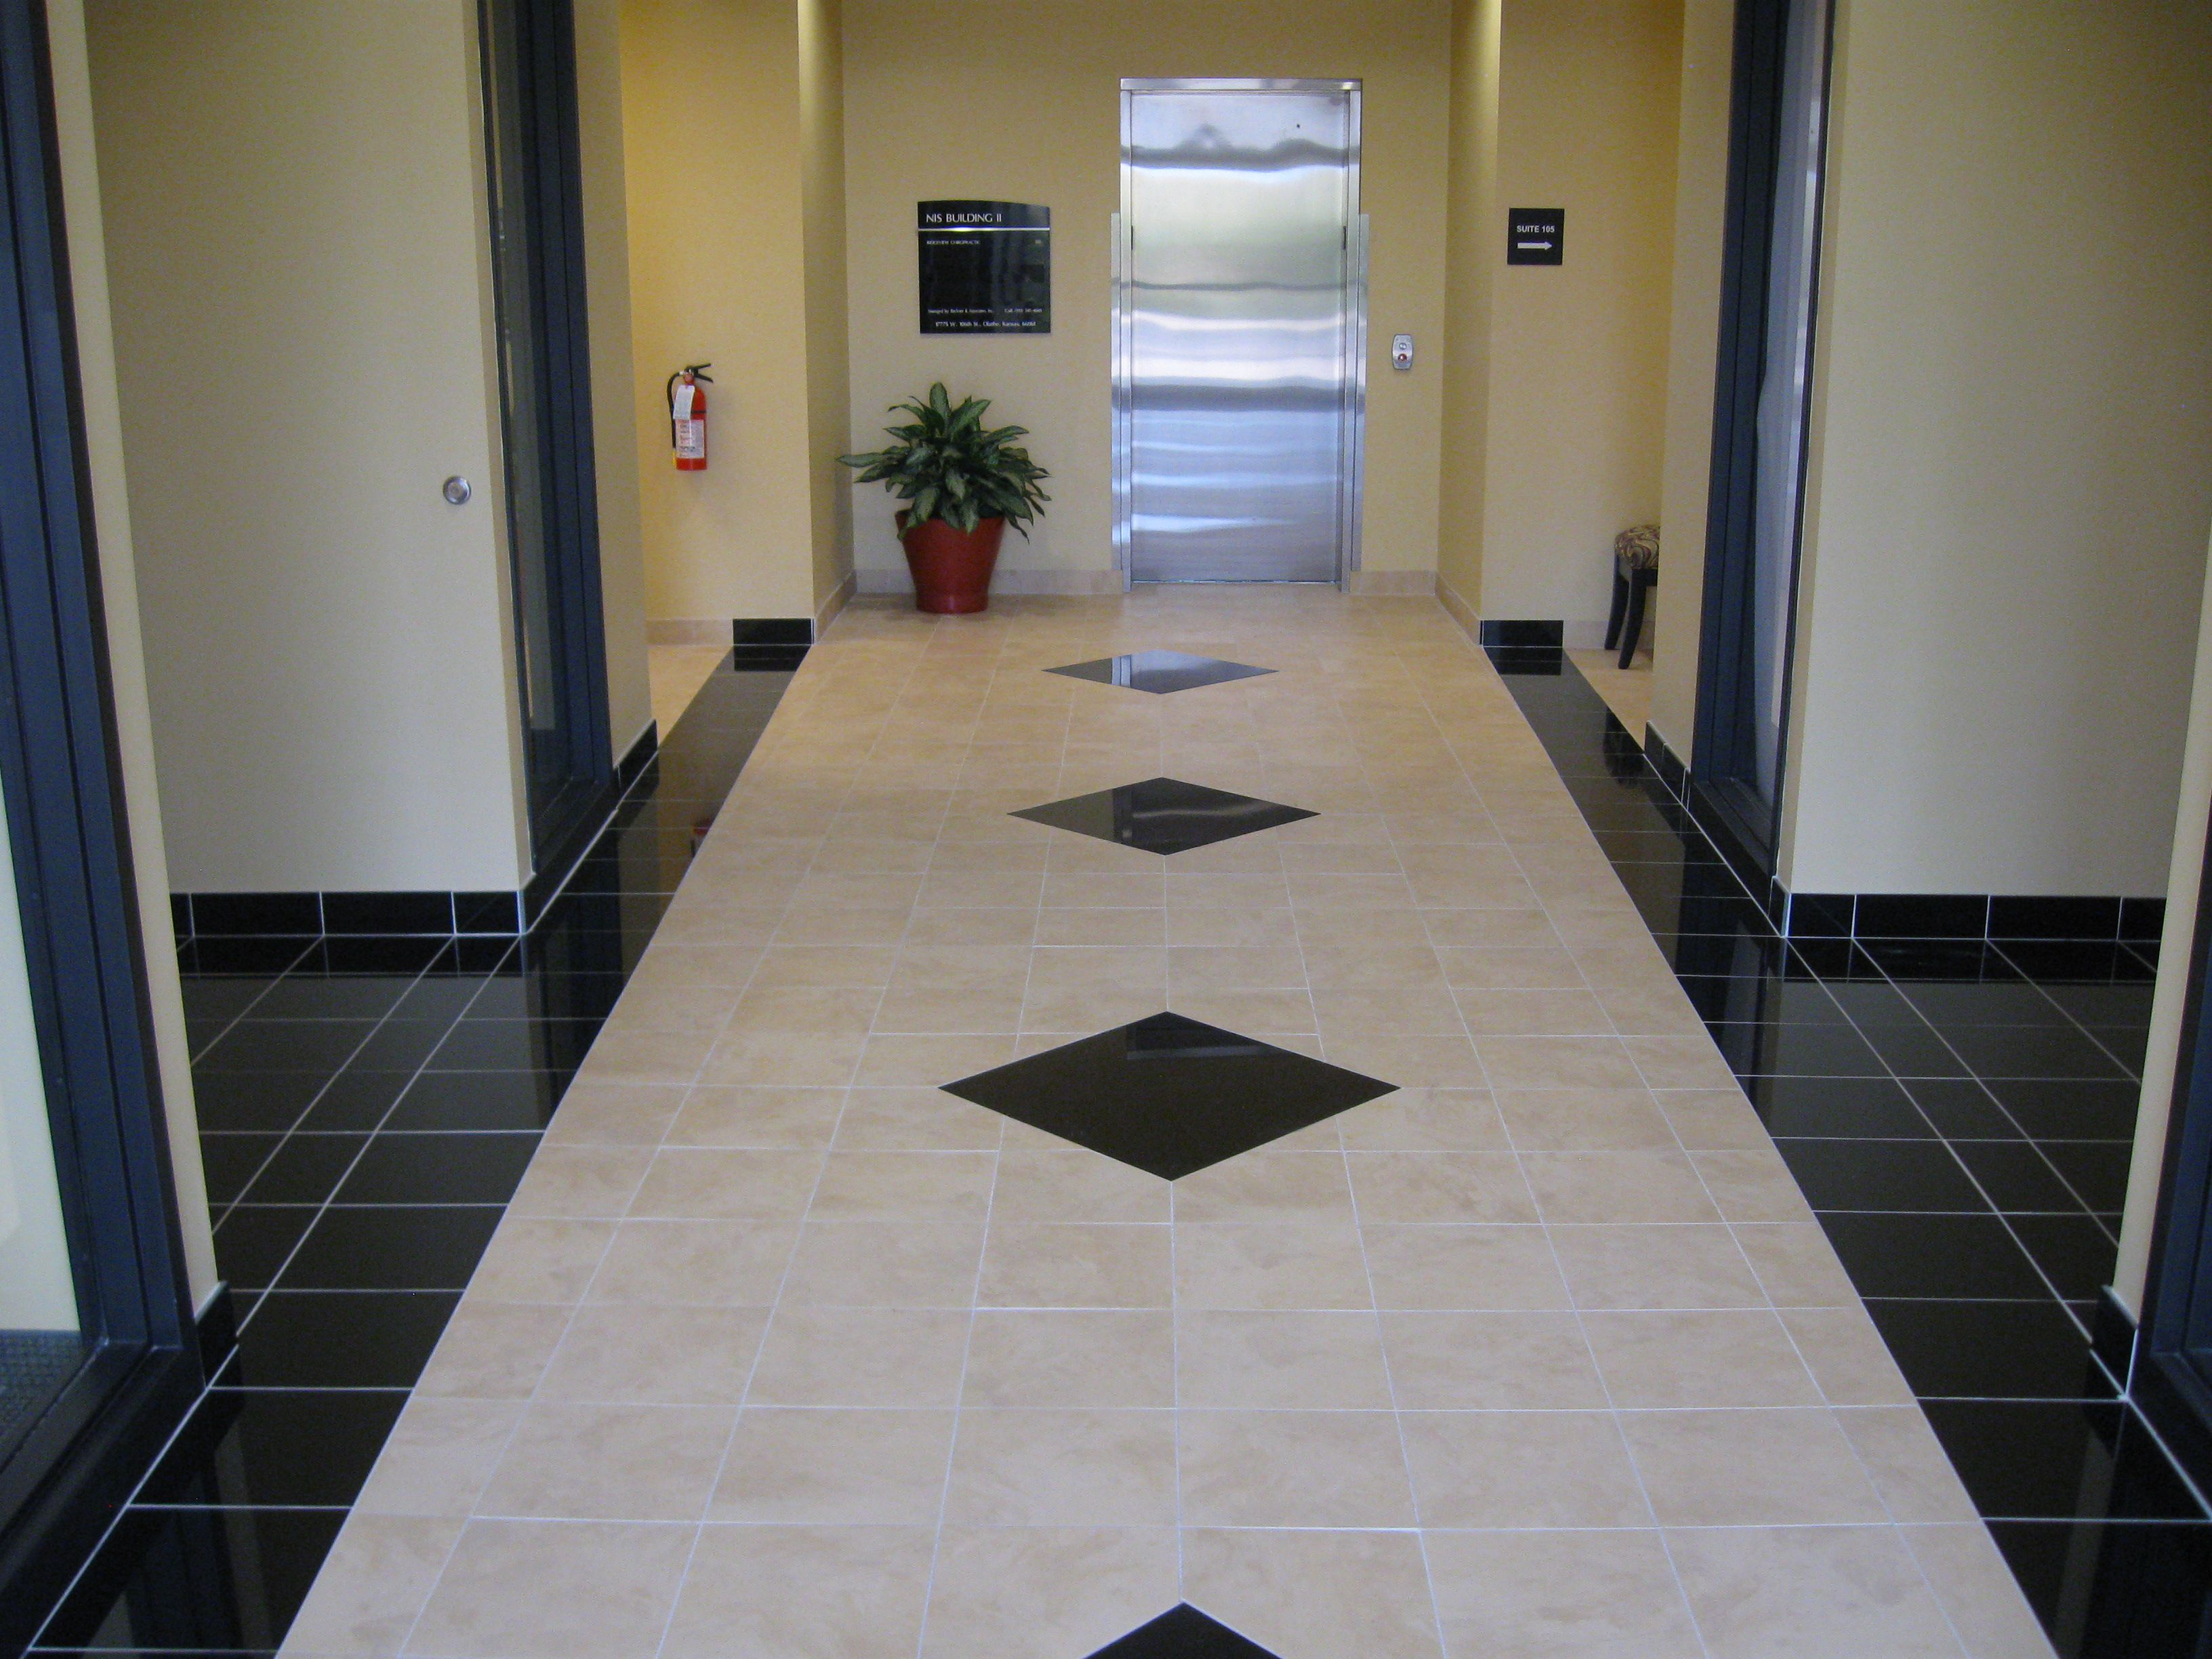 Commercial Porcelain Floor Tile Patterns Job Photos Tile Beautiful